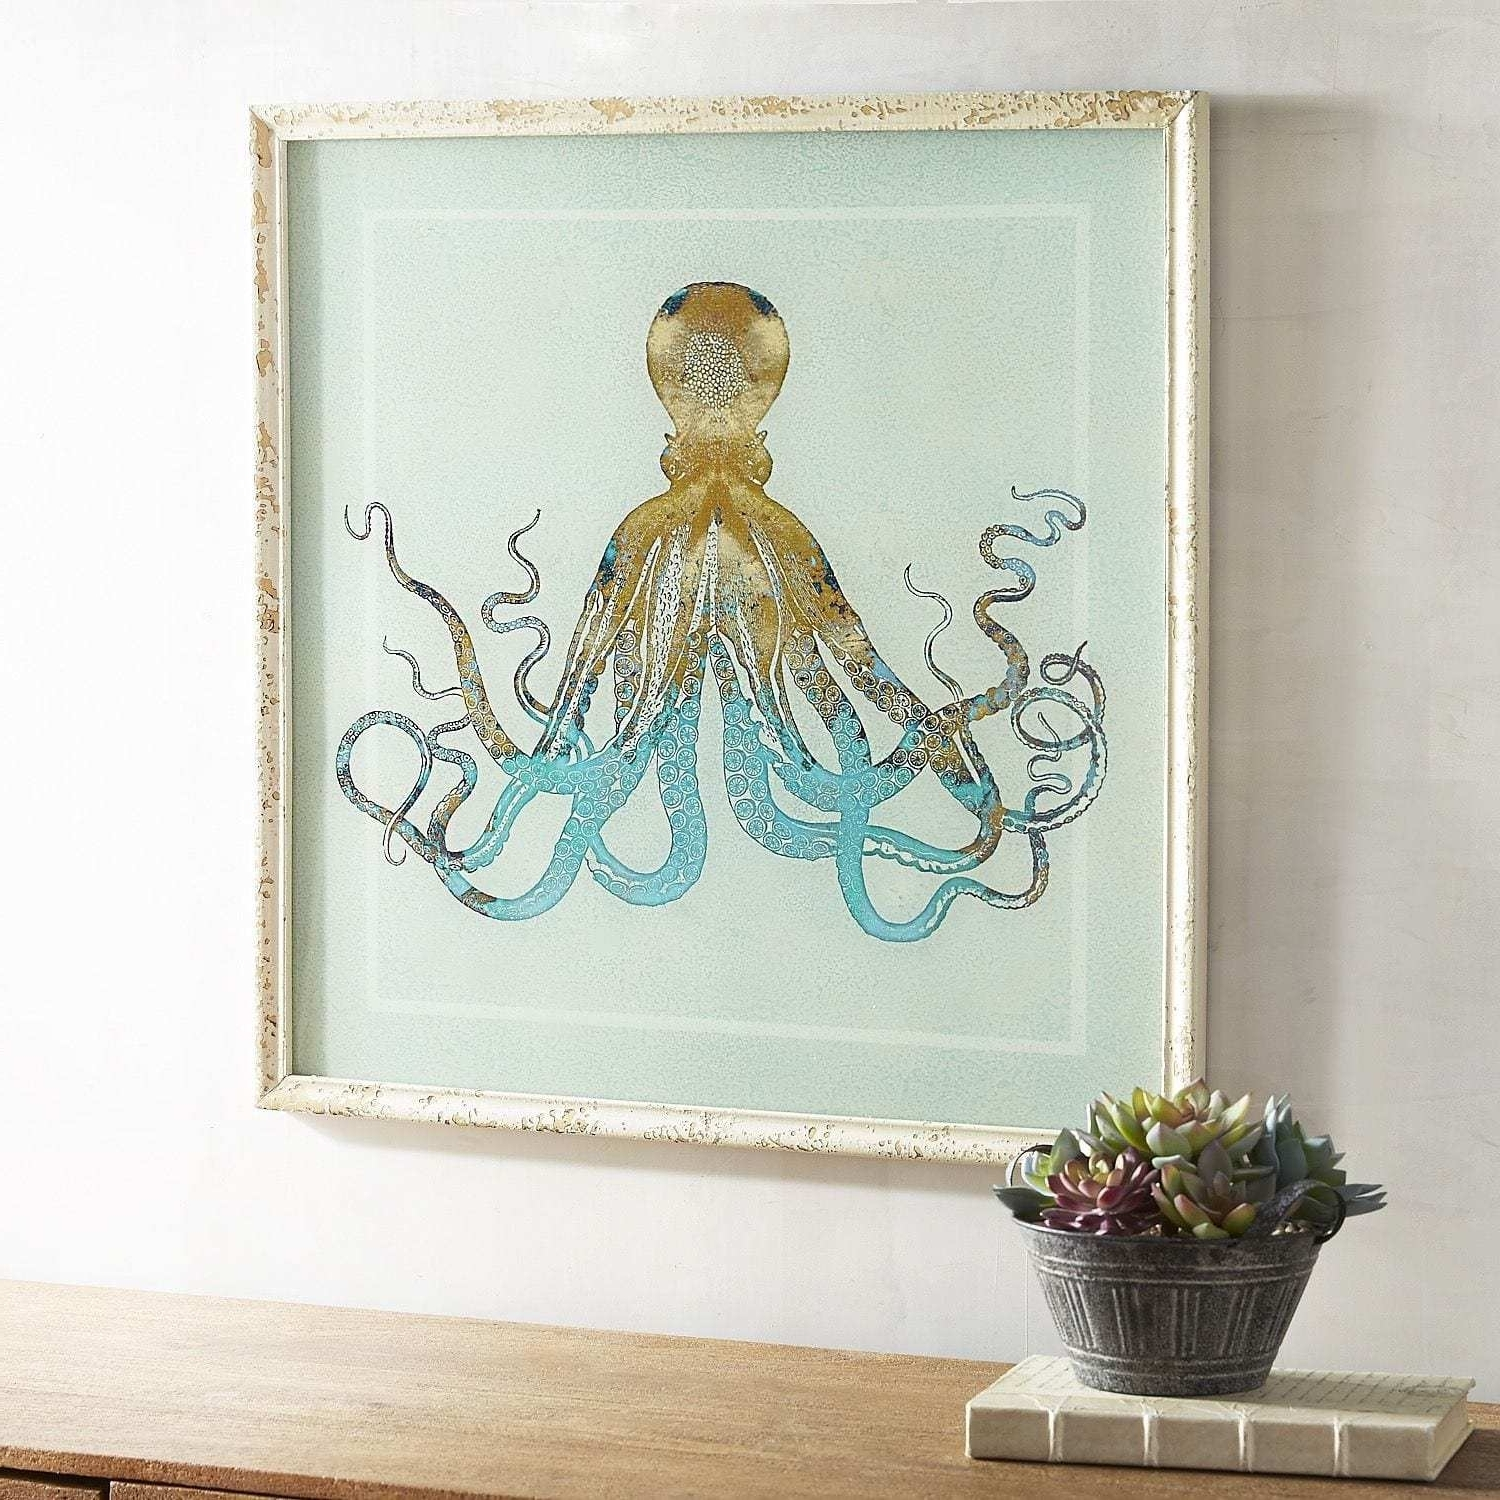 Well Known Marvelous Octopus Wall Art Pier Imports Image Of One Decor Concept Regarding Octopus Wall Art (View 8 of 15)